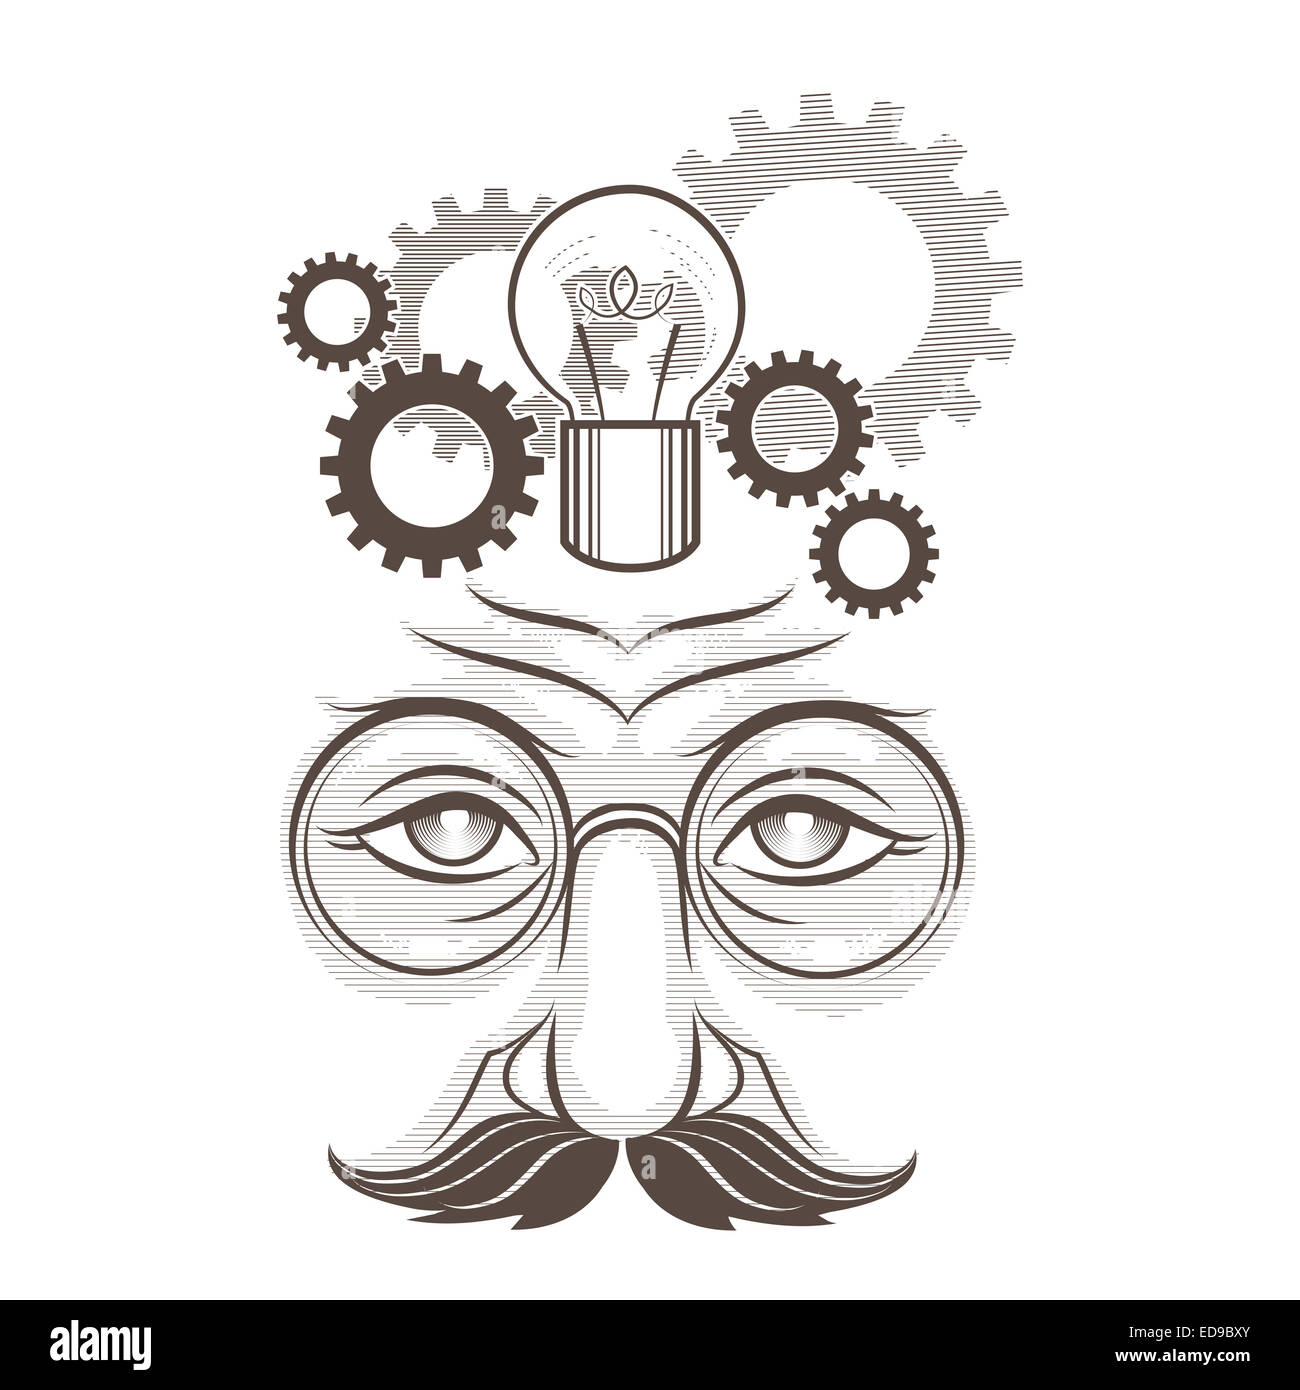 Illustration of human head, gears and lamp as thinking process drawn in engraving retro style isolated on white - Stock Image